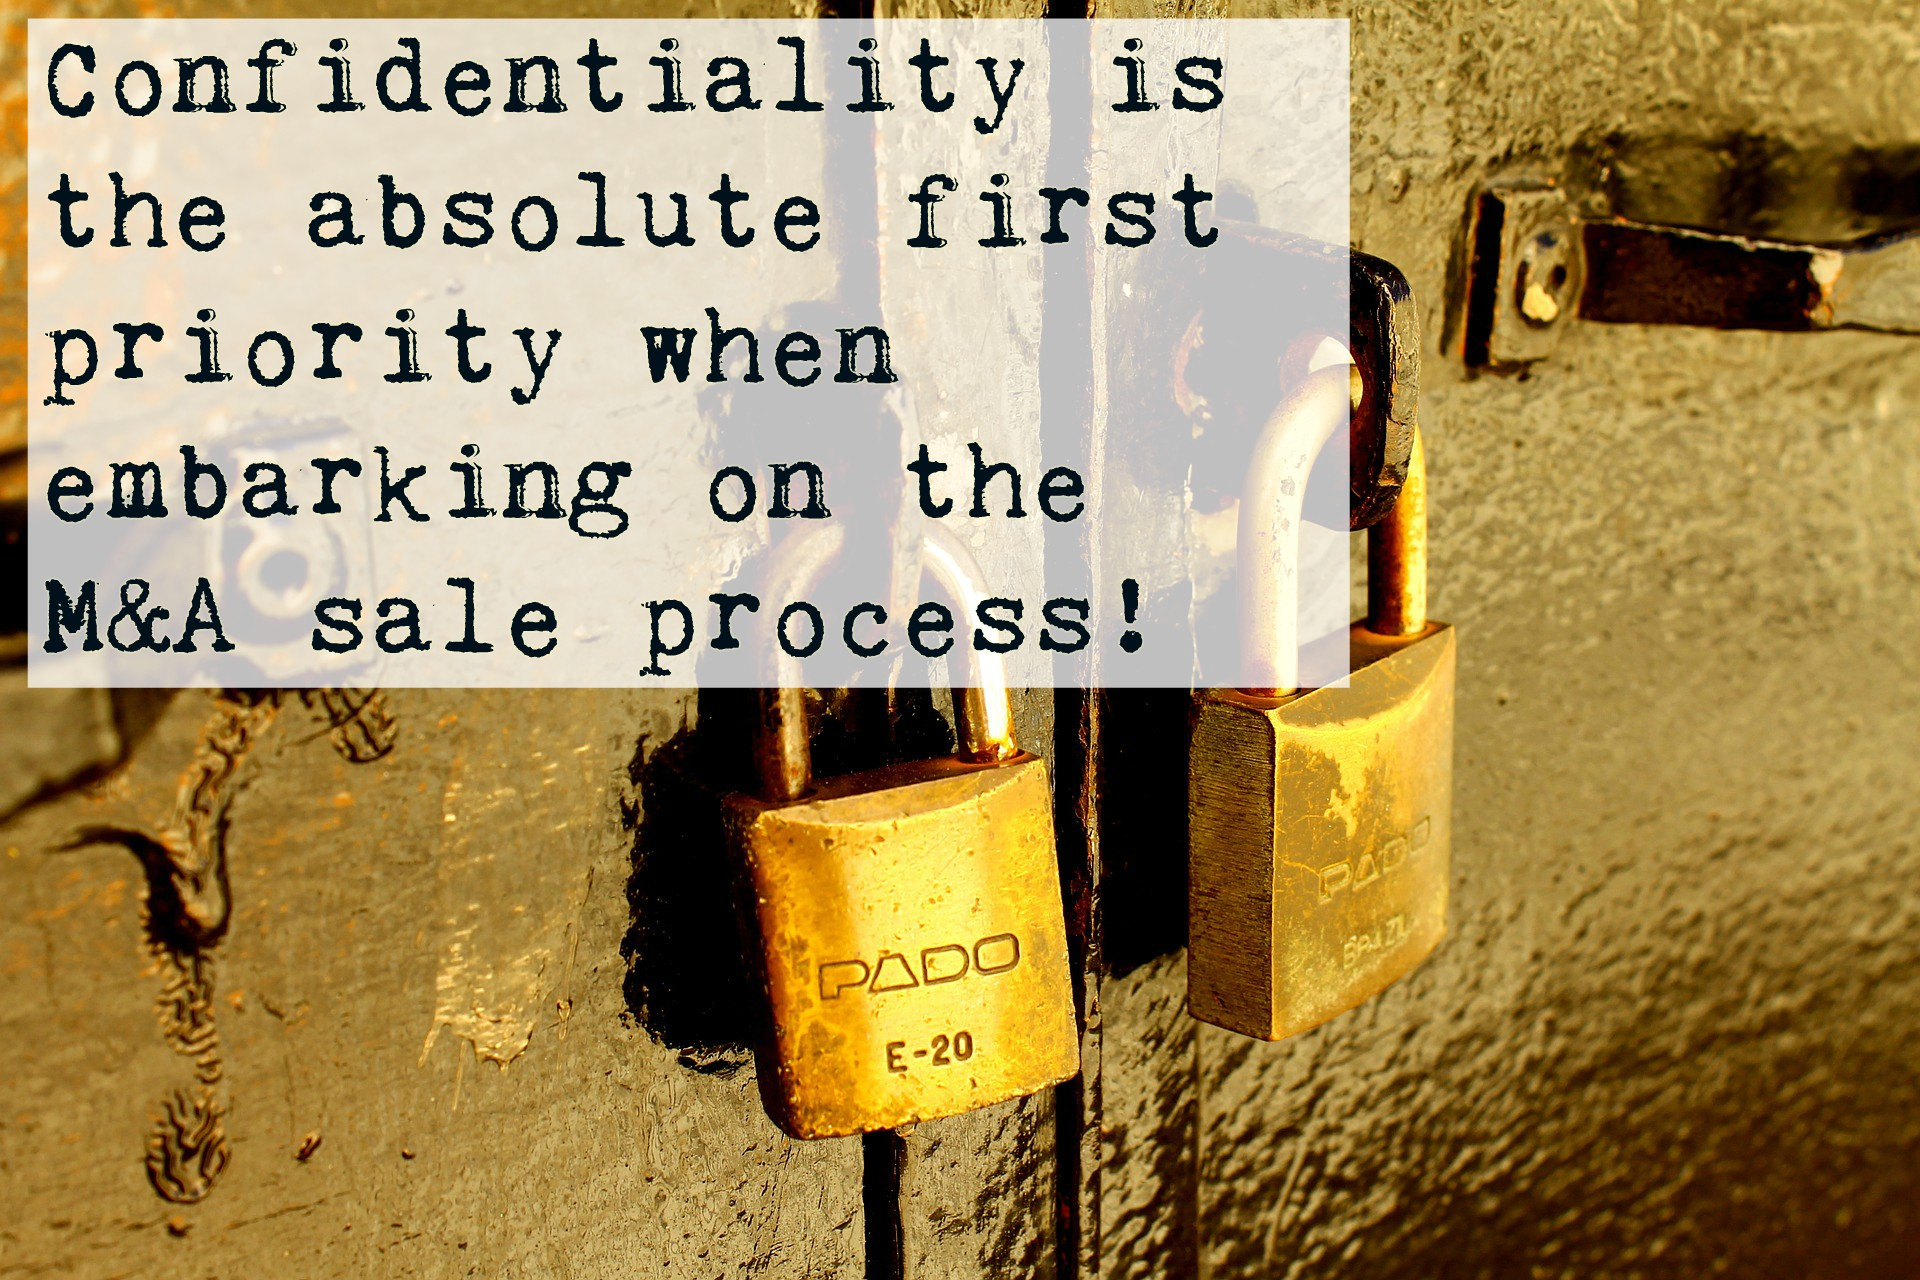 Confidentiality is top priority